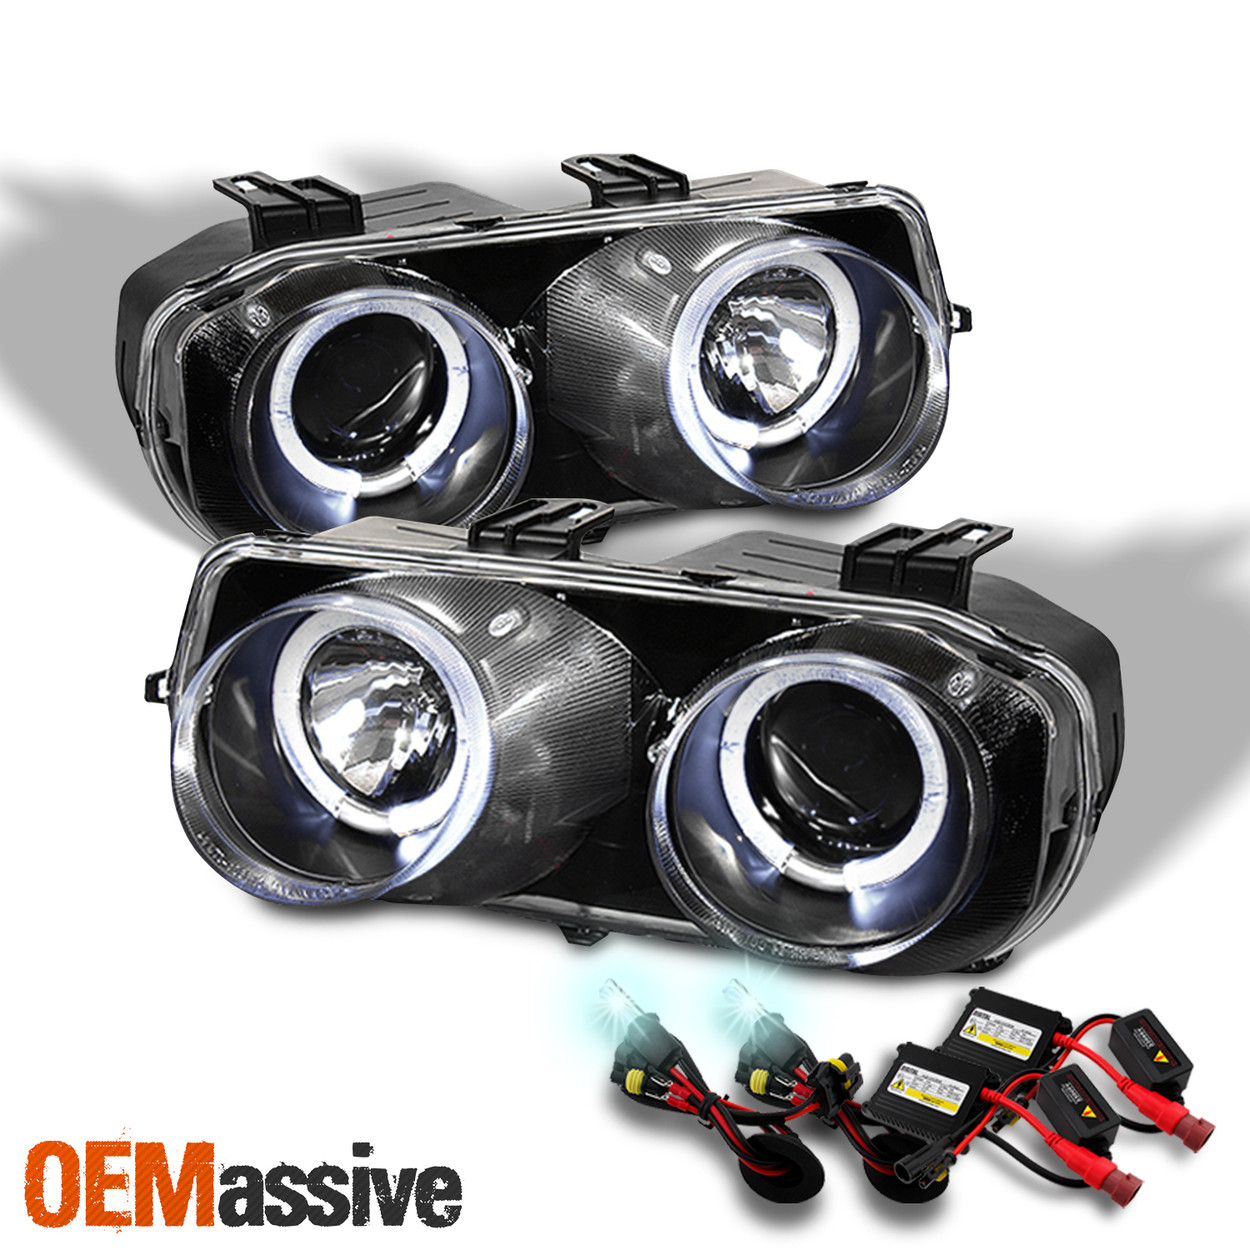 Fits 98 01 Acura Integra Led Dual Halo Drl Projector Headlights 8000k Hid Kit Oemassive